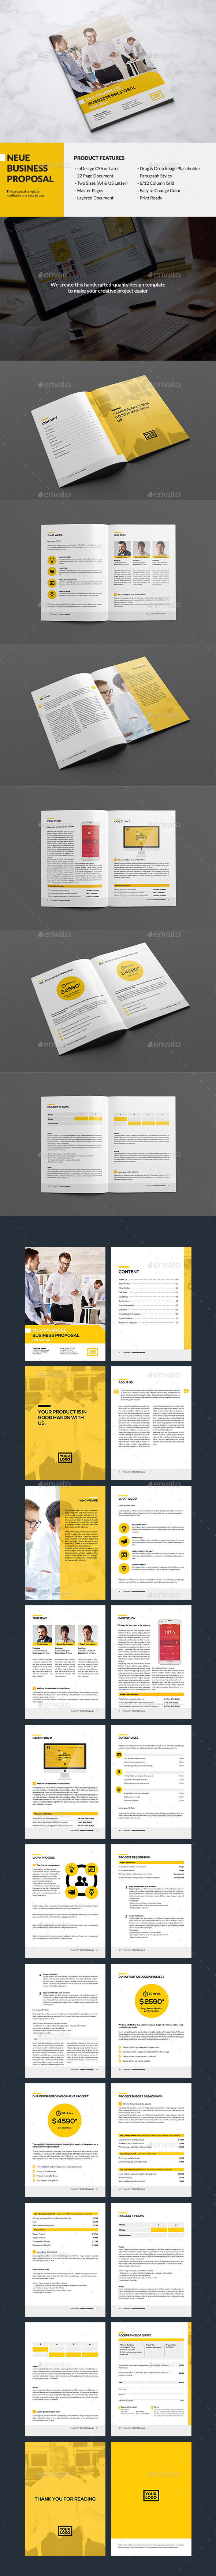 Neue - Website Proposal - Proposals & Invoices Stationery